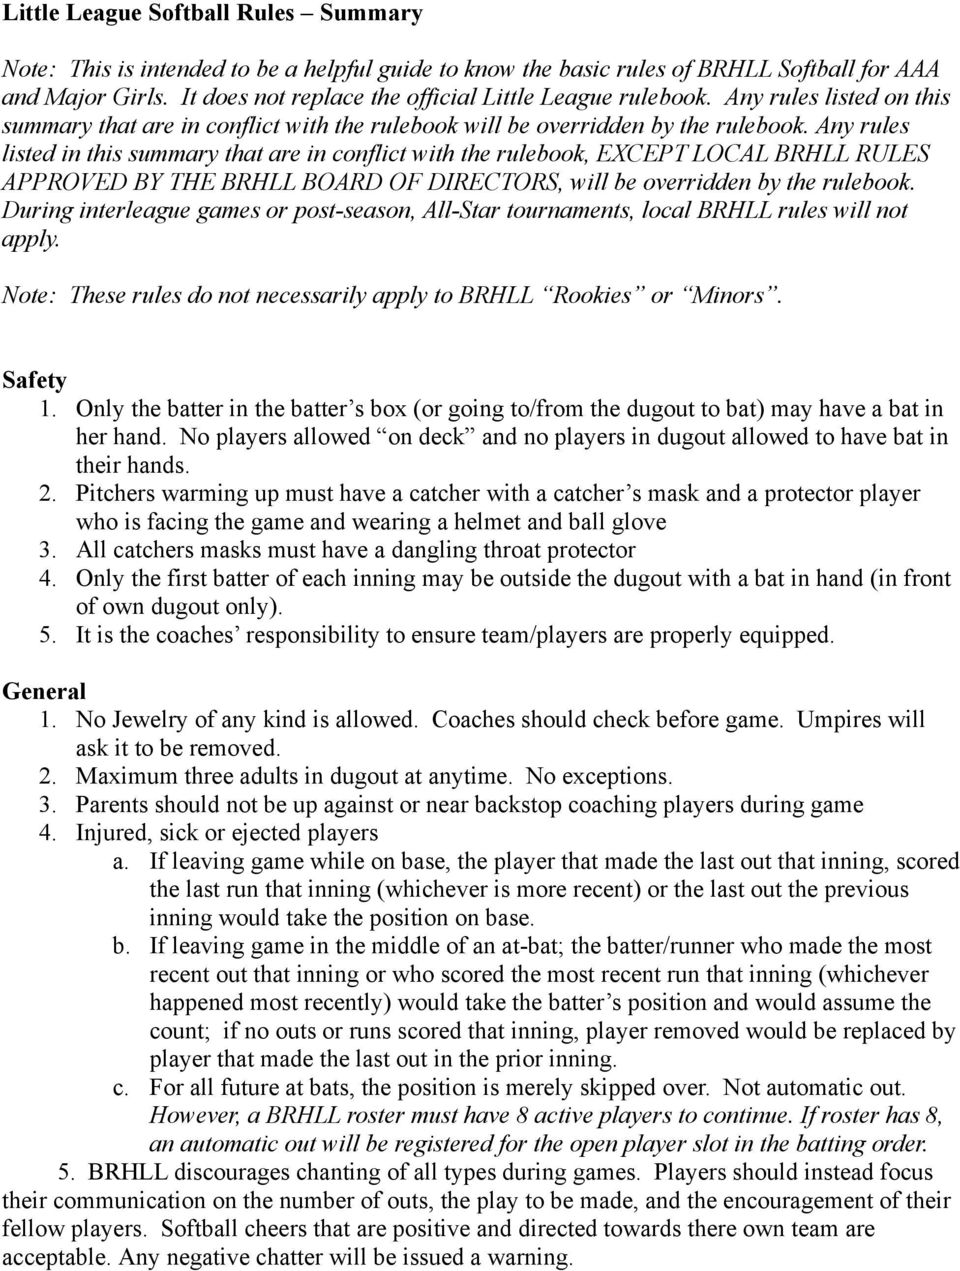 Any rules listed in this summary that are in conflict with the rulebook, EXCEPT LOCAL BRHLL RULES APPROVED BY THE BRHLL BOARD OF DIRECTORS, will be overridden by the rulebook.